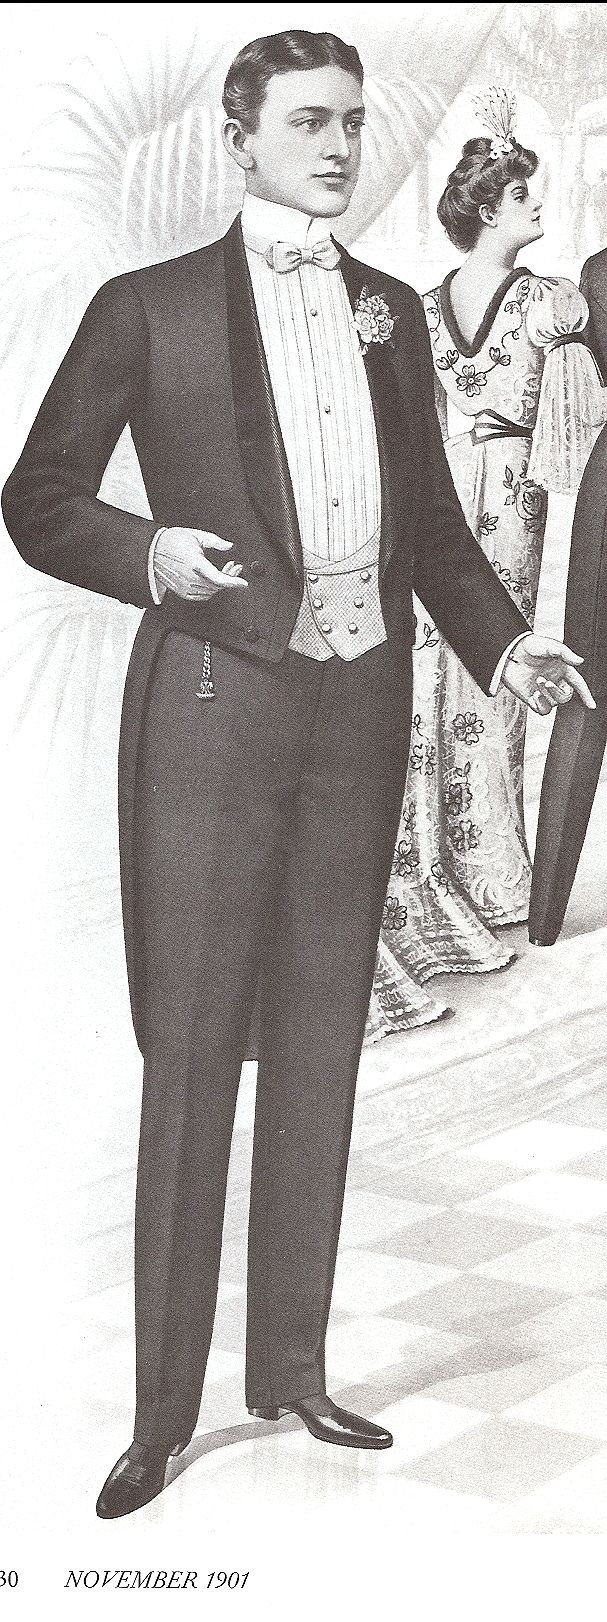 1870's tuxedo; evening suit with a sack jacket.